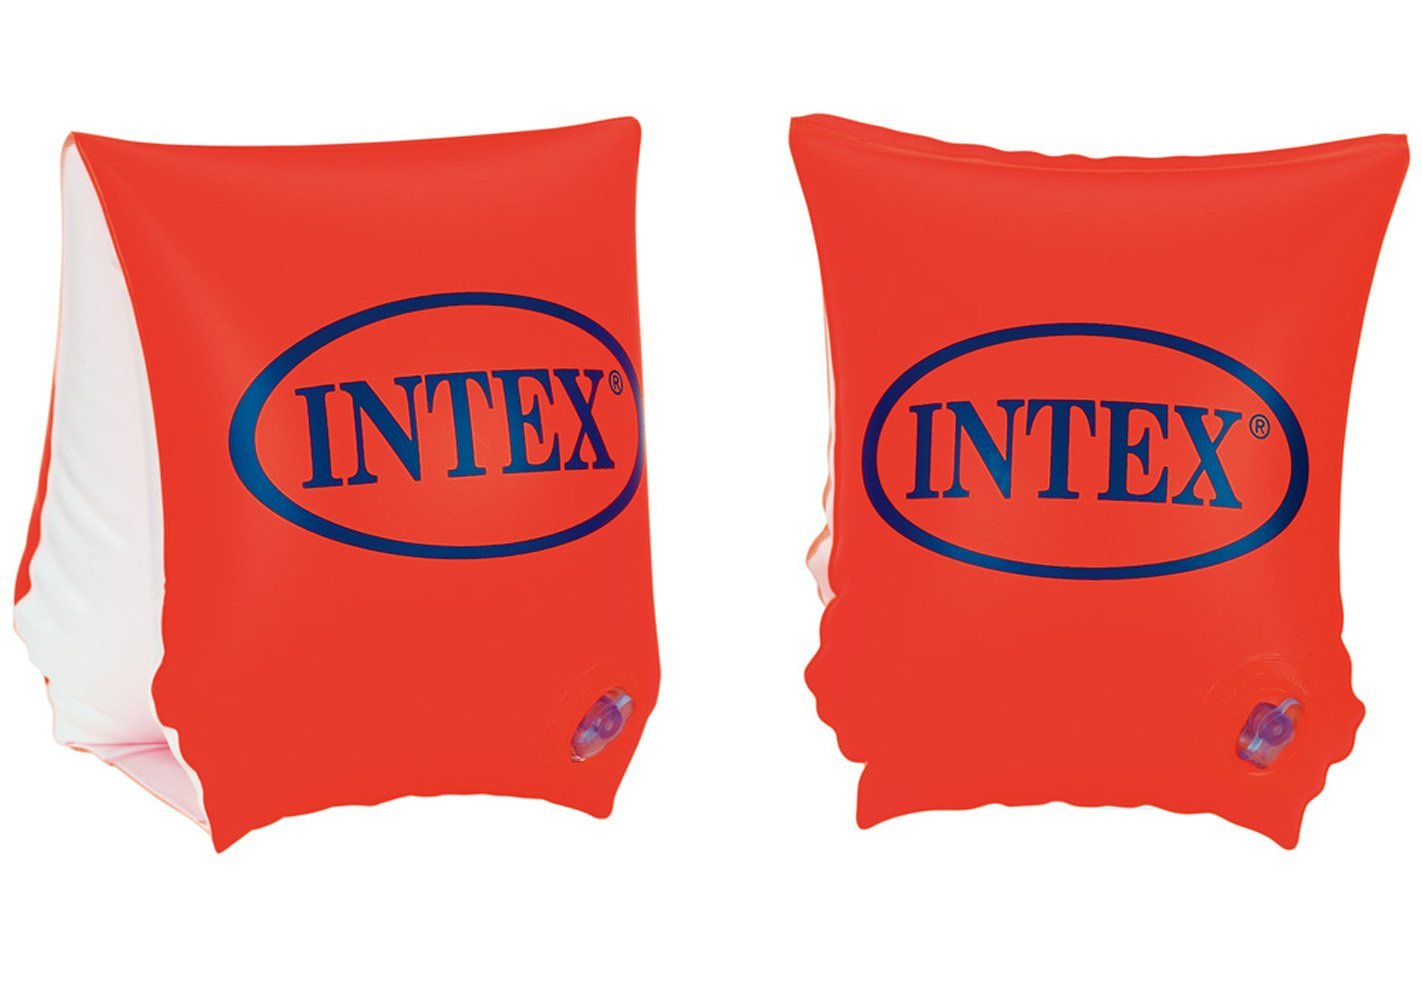 brassards-de-natation-intex